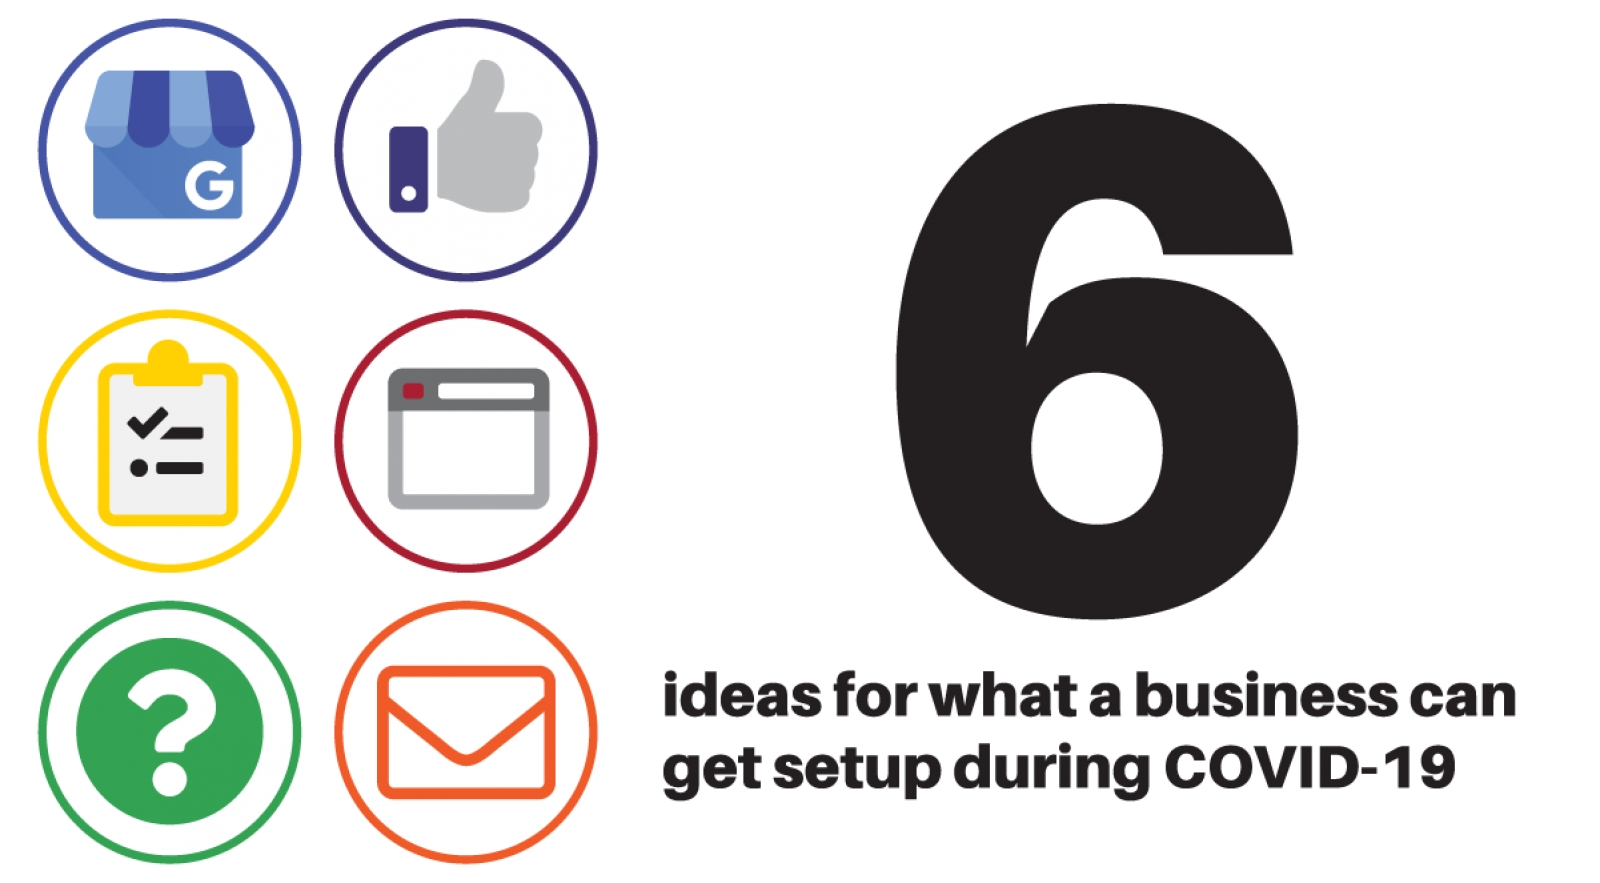 Six ideas for what a business can get set up during COVID-19